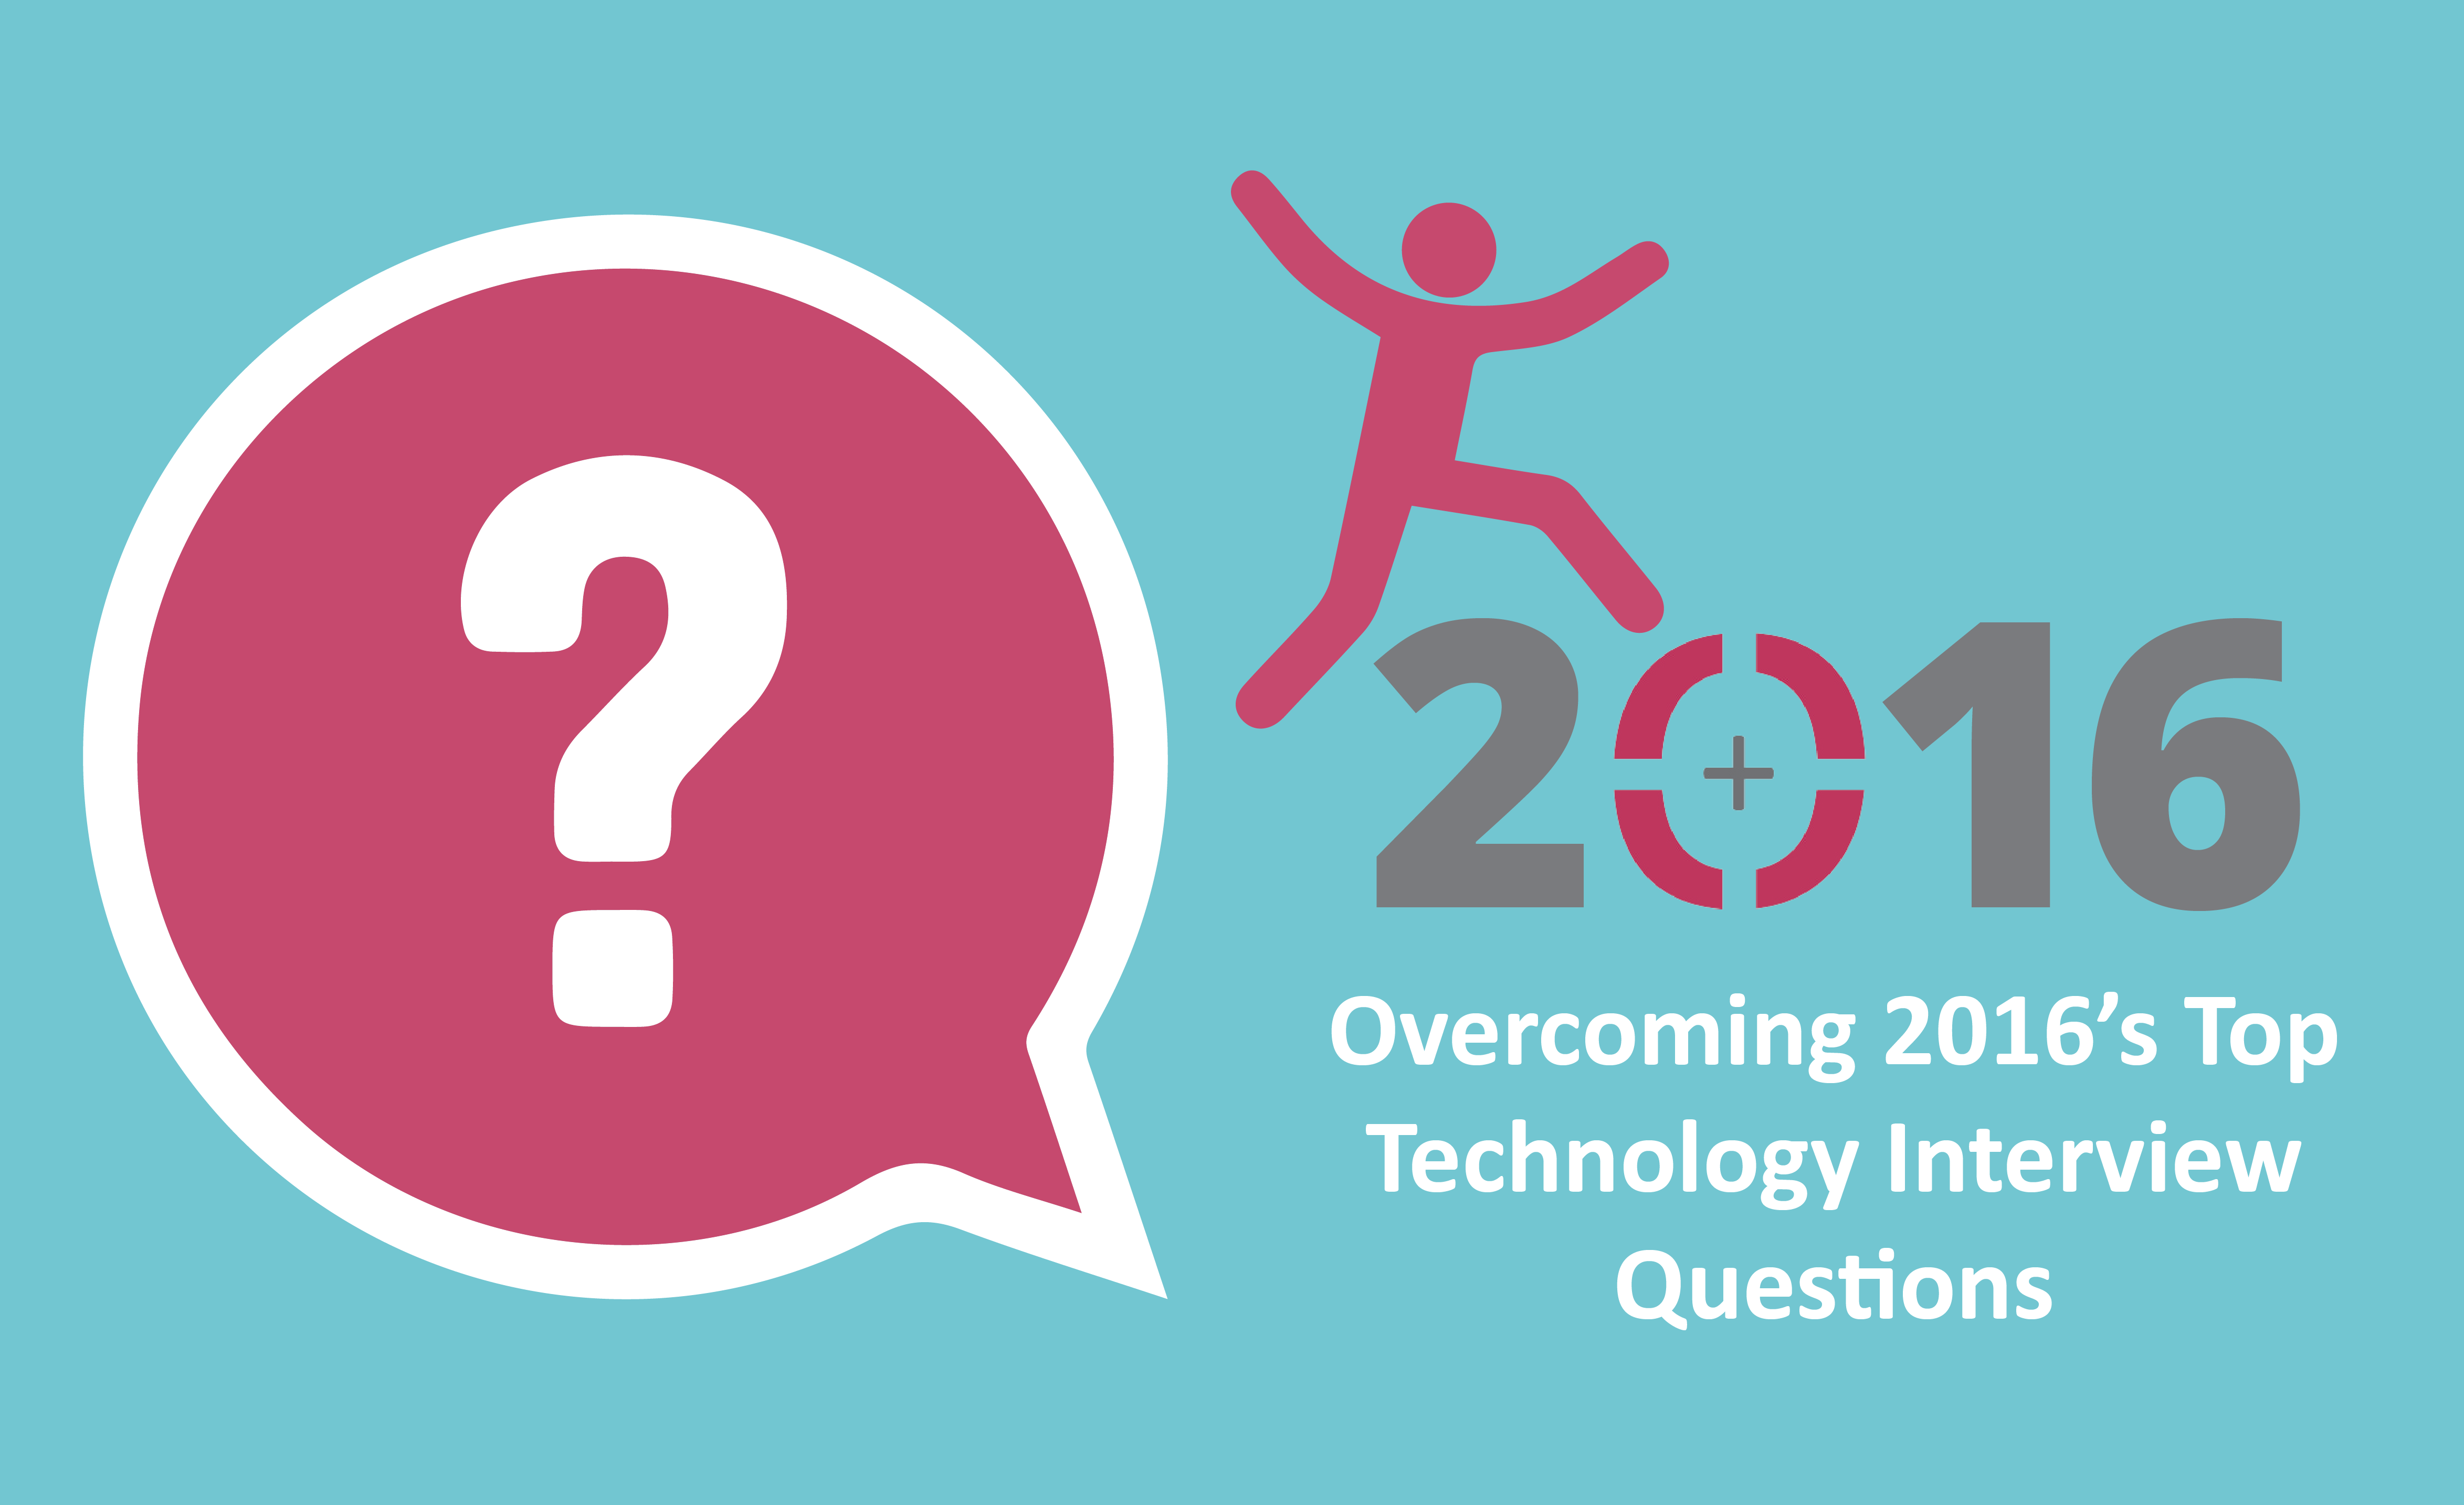 overcoming the 10 technology interview questions for 2016 sourced 10 technology interview questions for 2016 and how to overcome them sourced christchurch it recruitment